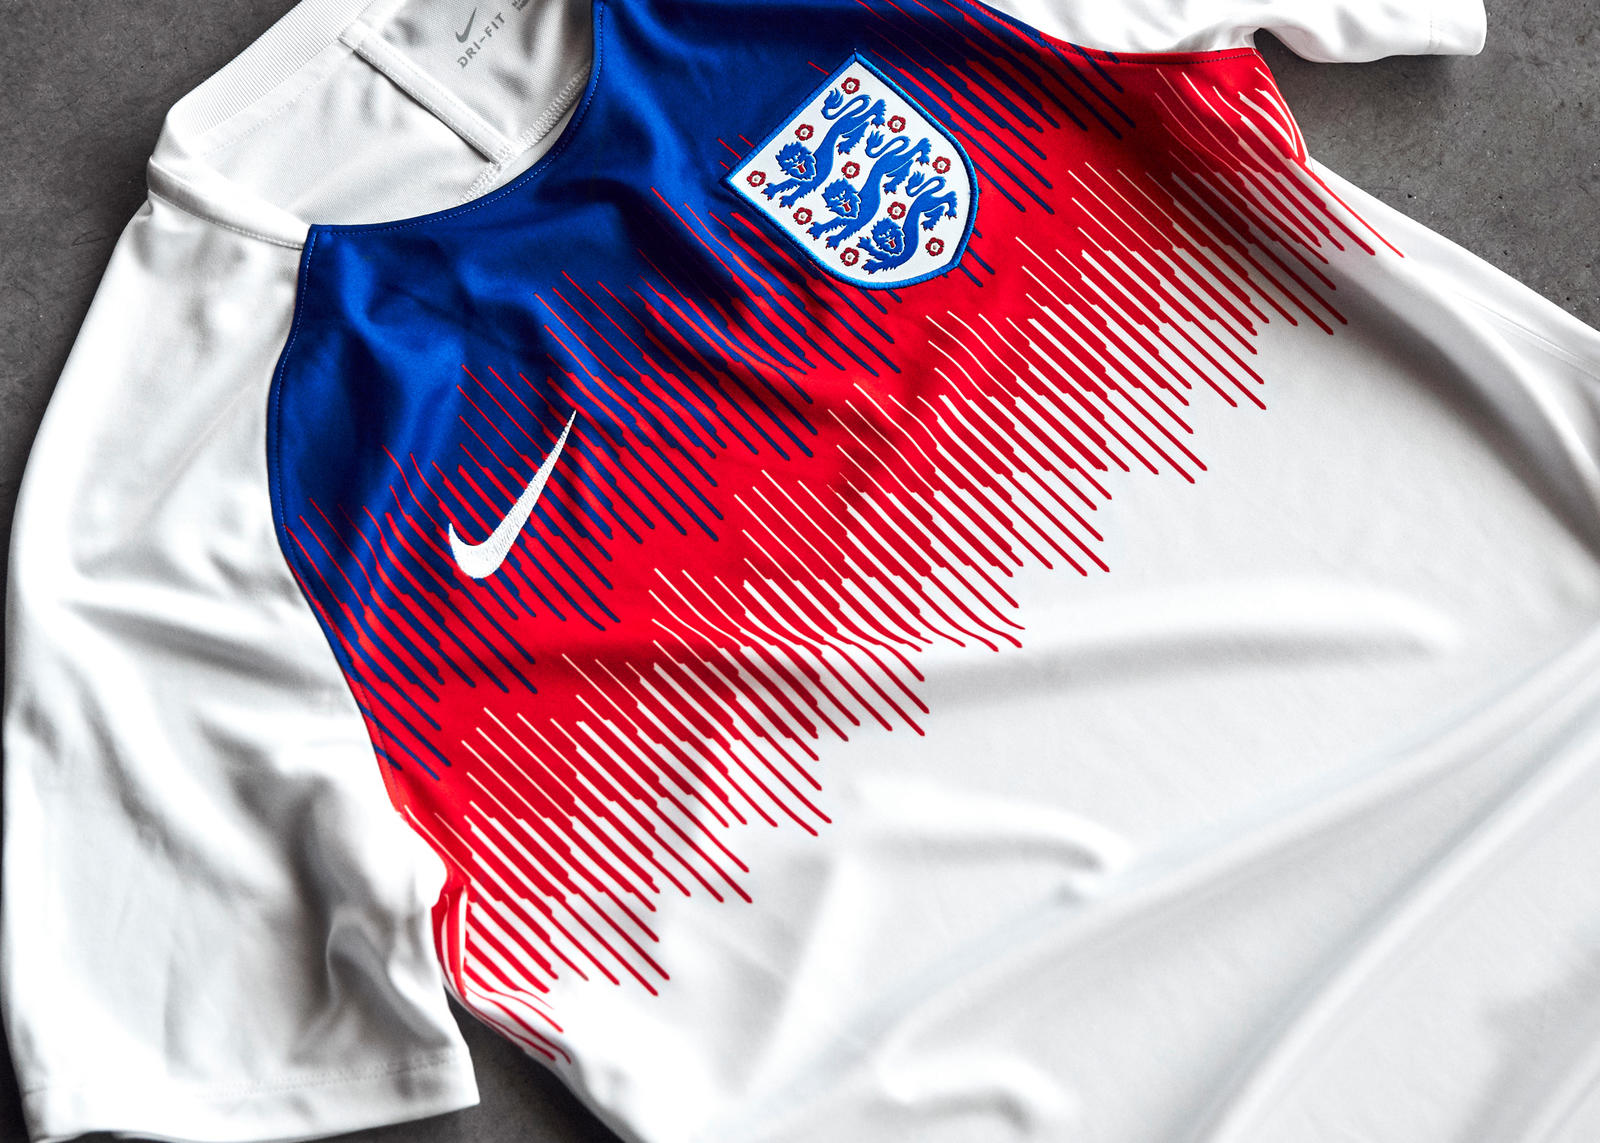 021f6709 Les Bleus Secure a Second Star on their Nike Kits - Nike News